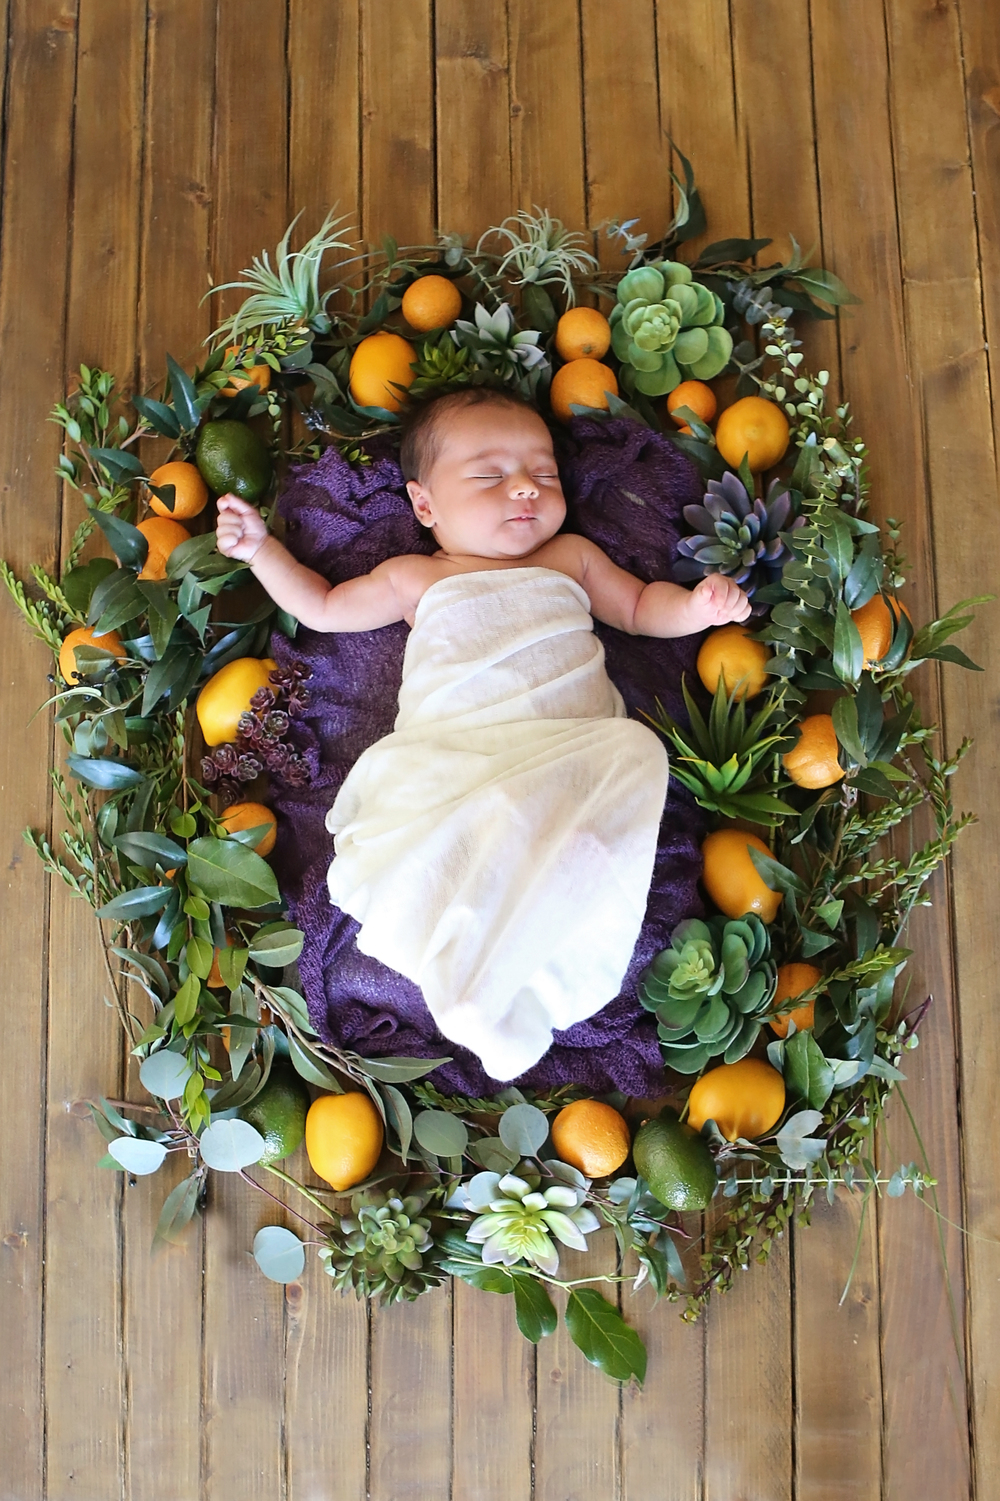 Scottsdale, AZ newborn photography with succulents and citrus wreath. Newborn baby photography with fresh green floral inspirations. Plum purple with cream newborn session.